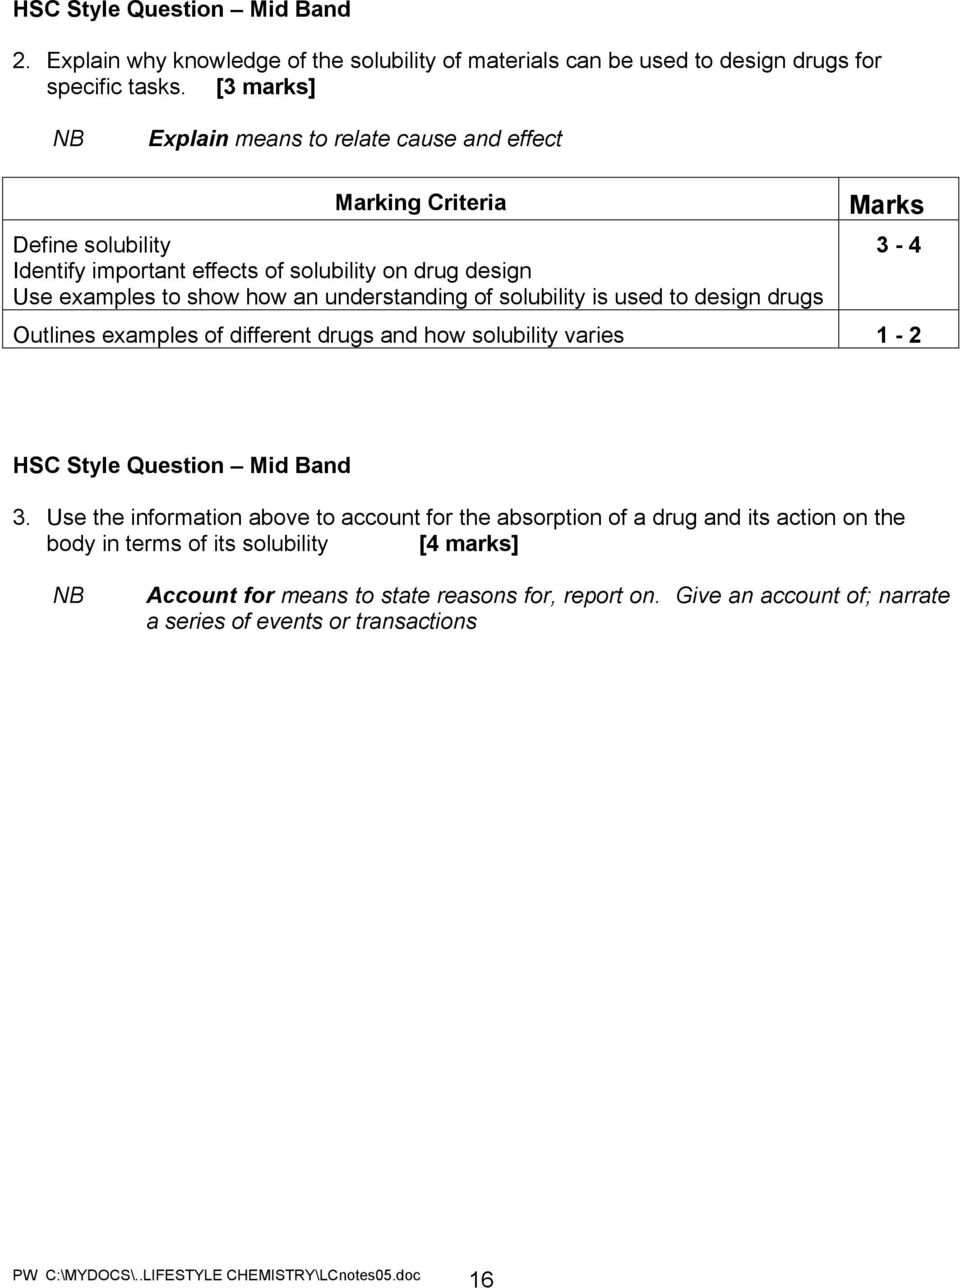 understanding of solubility is used to design drugs Marks Outlines examples of different drugs and how solubility varies 1-2 3-4 HSC Style Question Mid Band 3.